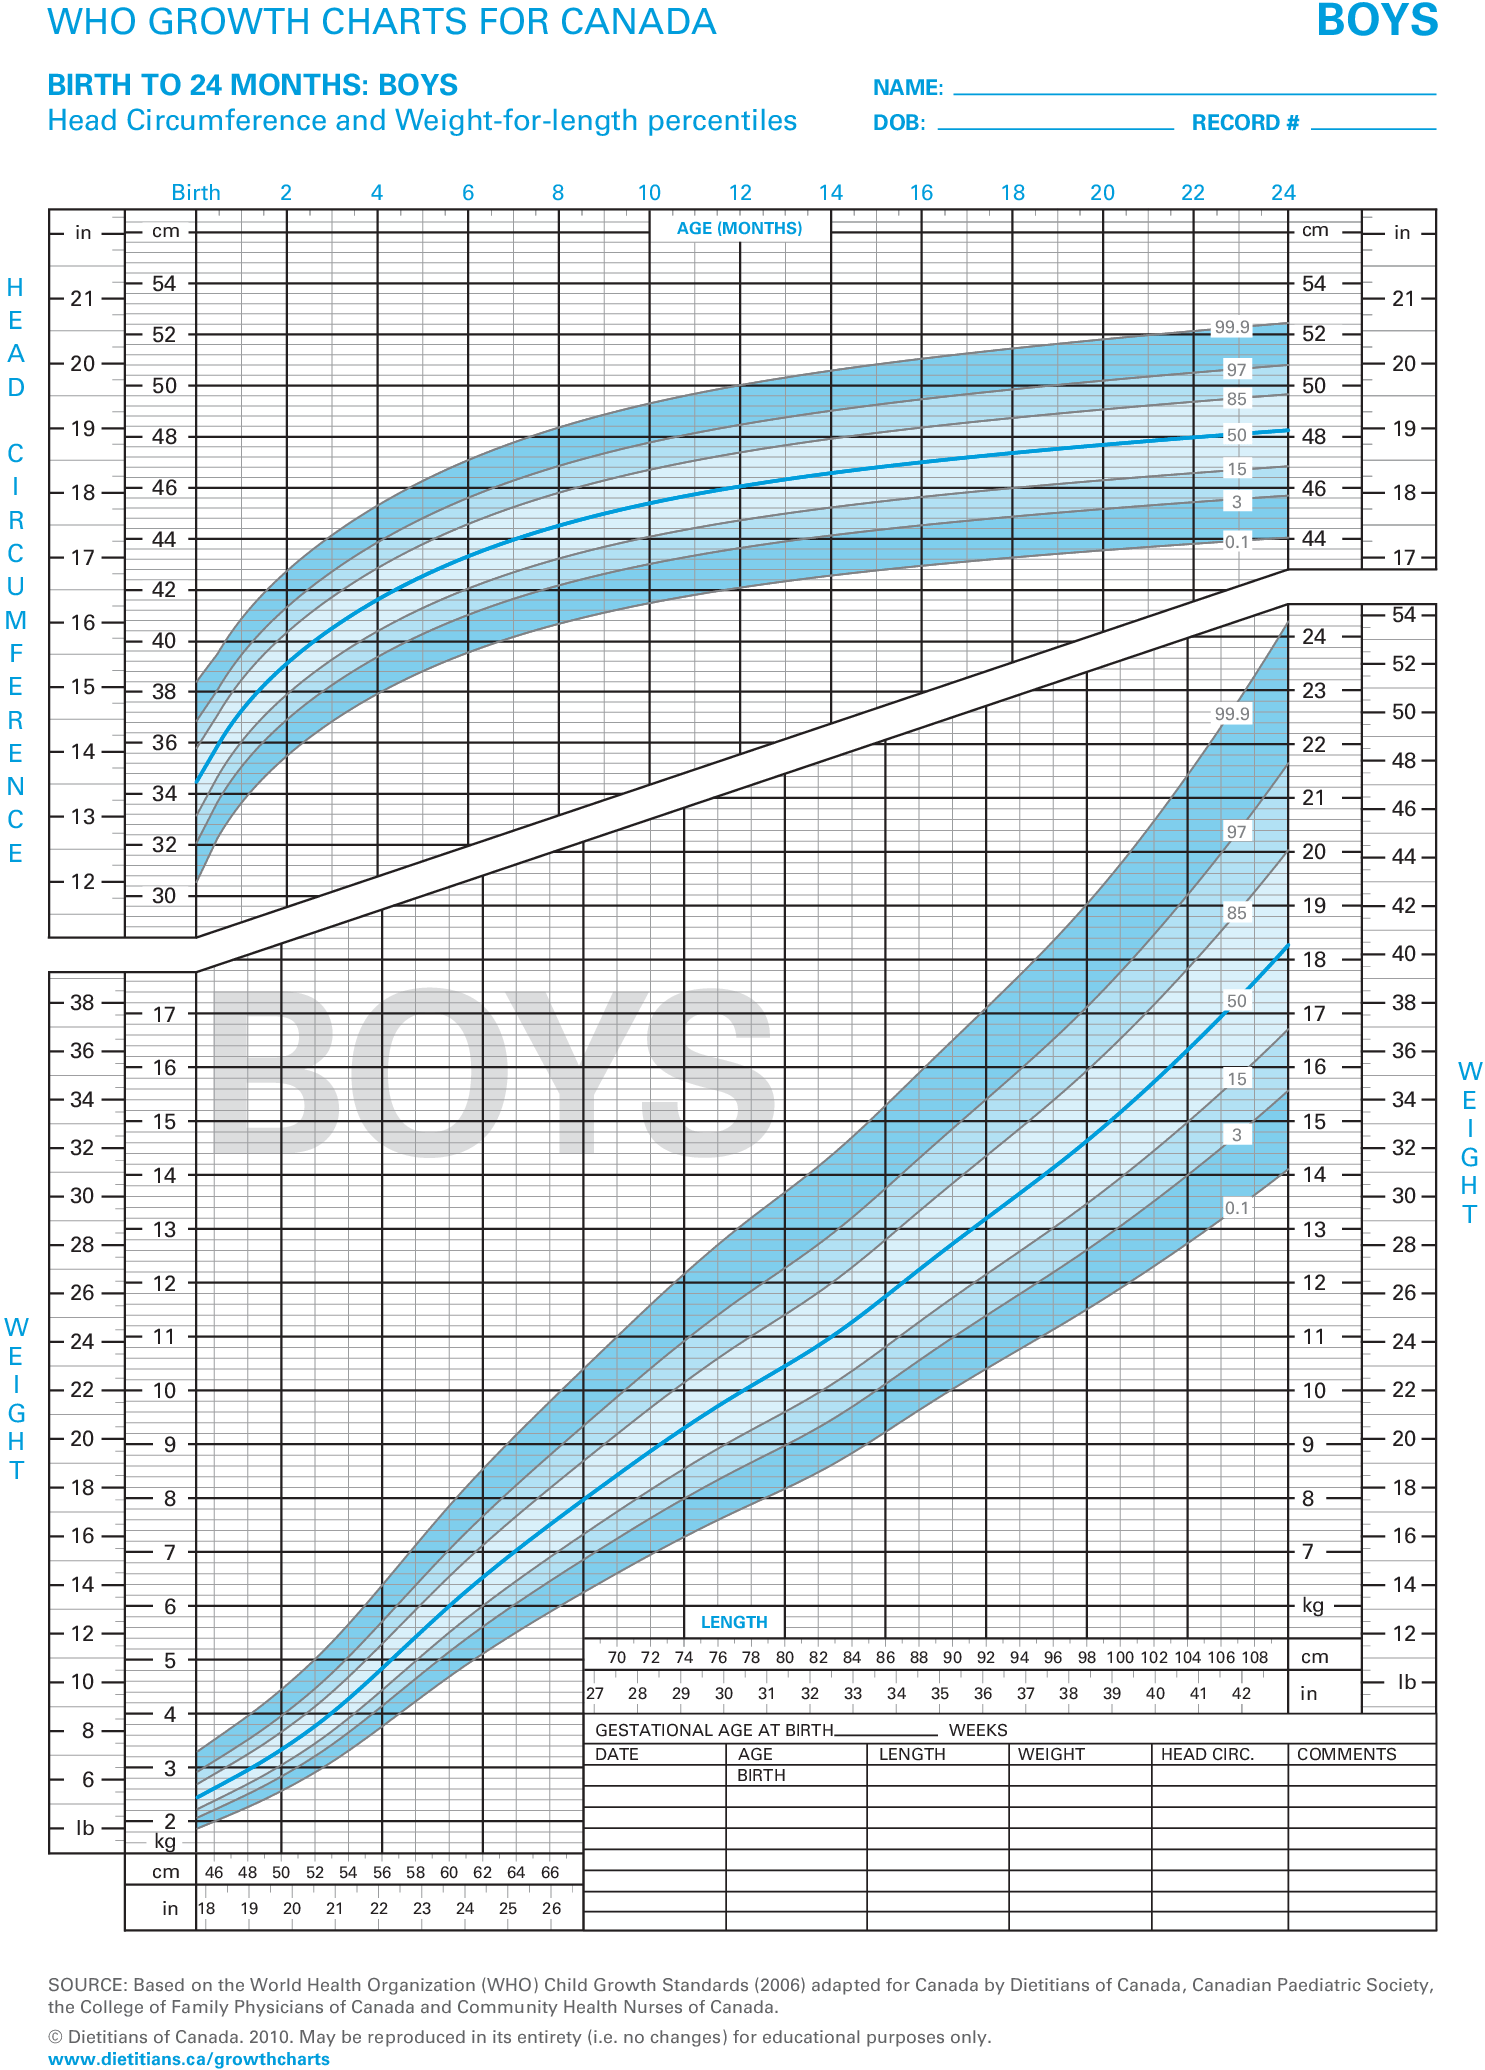 This growth chart allows you to check the progress of babies both boys and girls from birth months old specific is for head also who charts canada circumference wight rh help junoemr